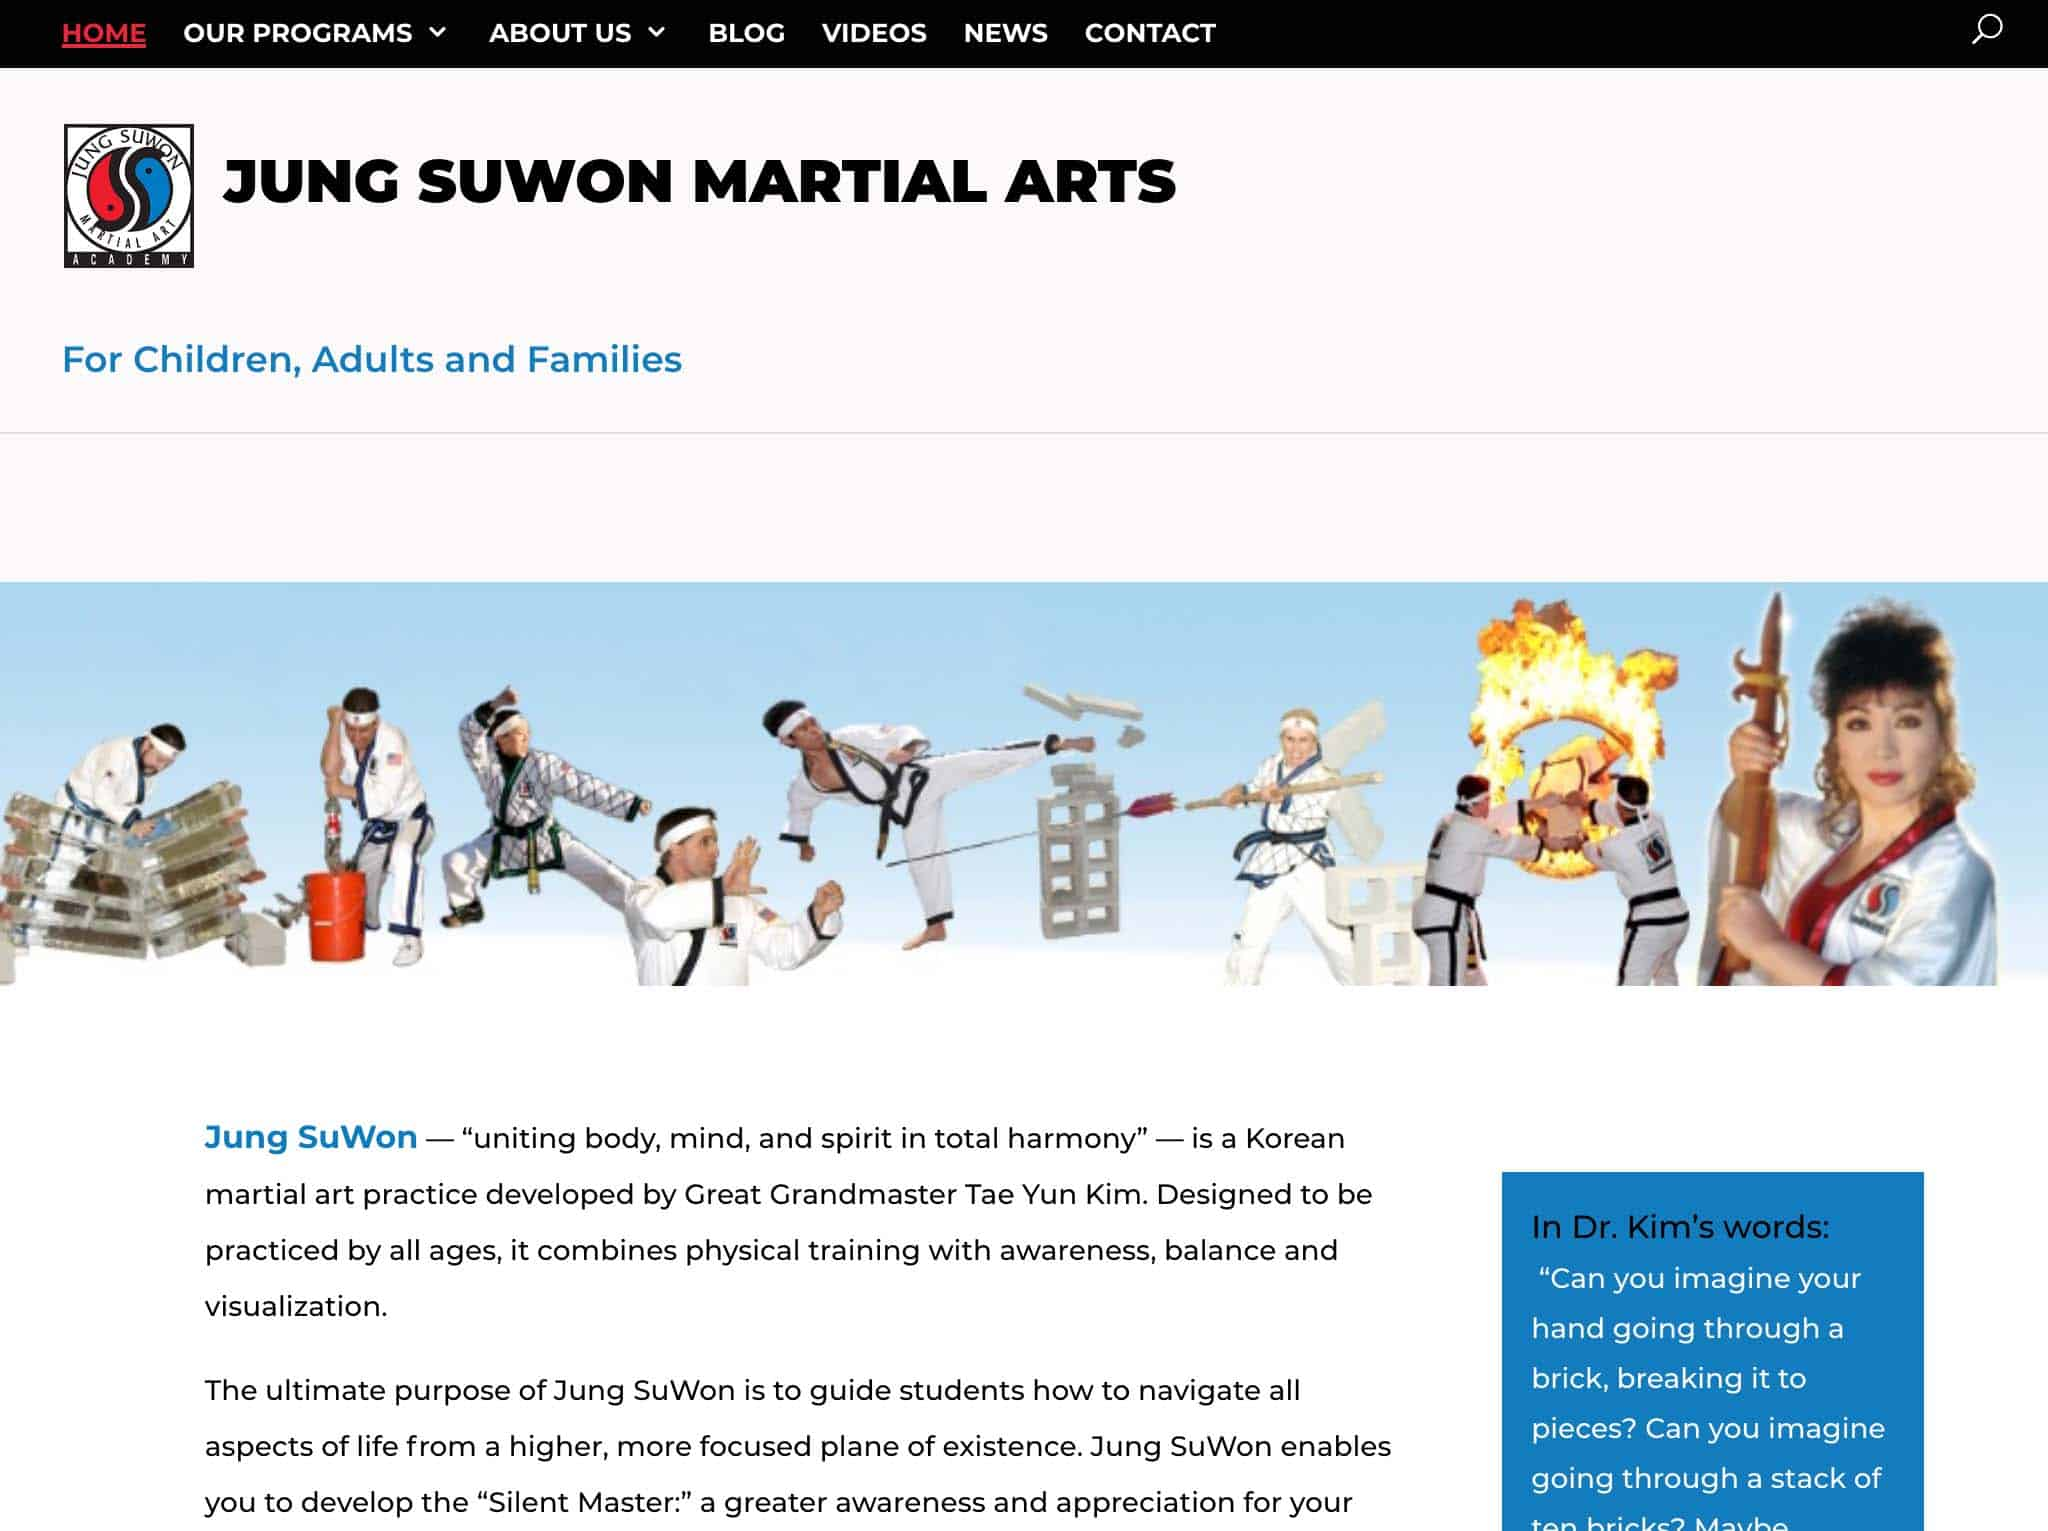 Jung Suwon Pro Website Developed by Webdirexion